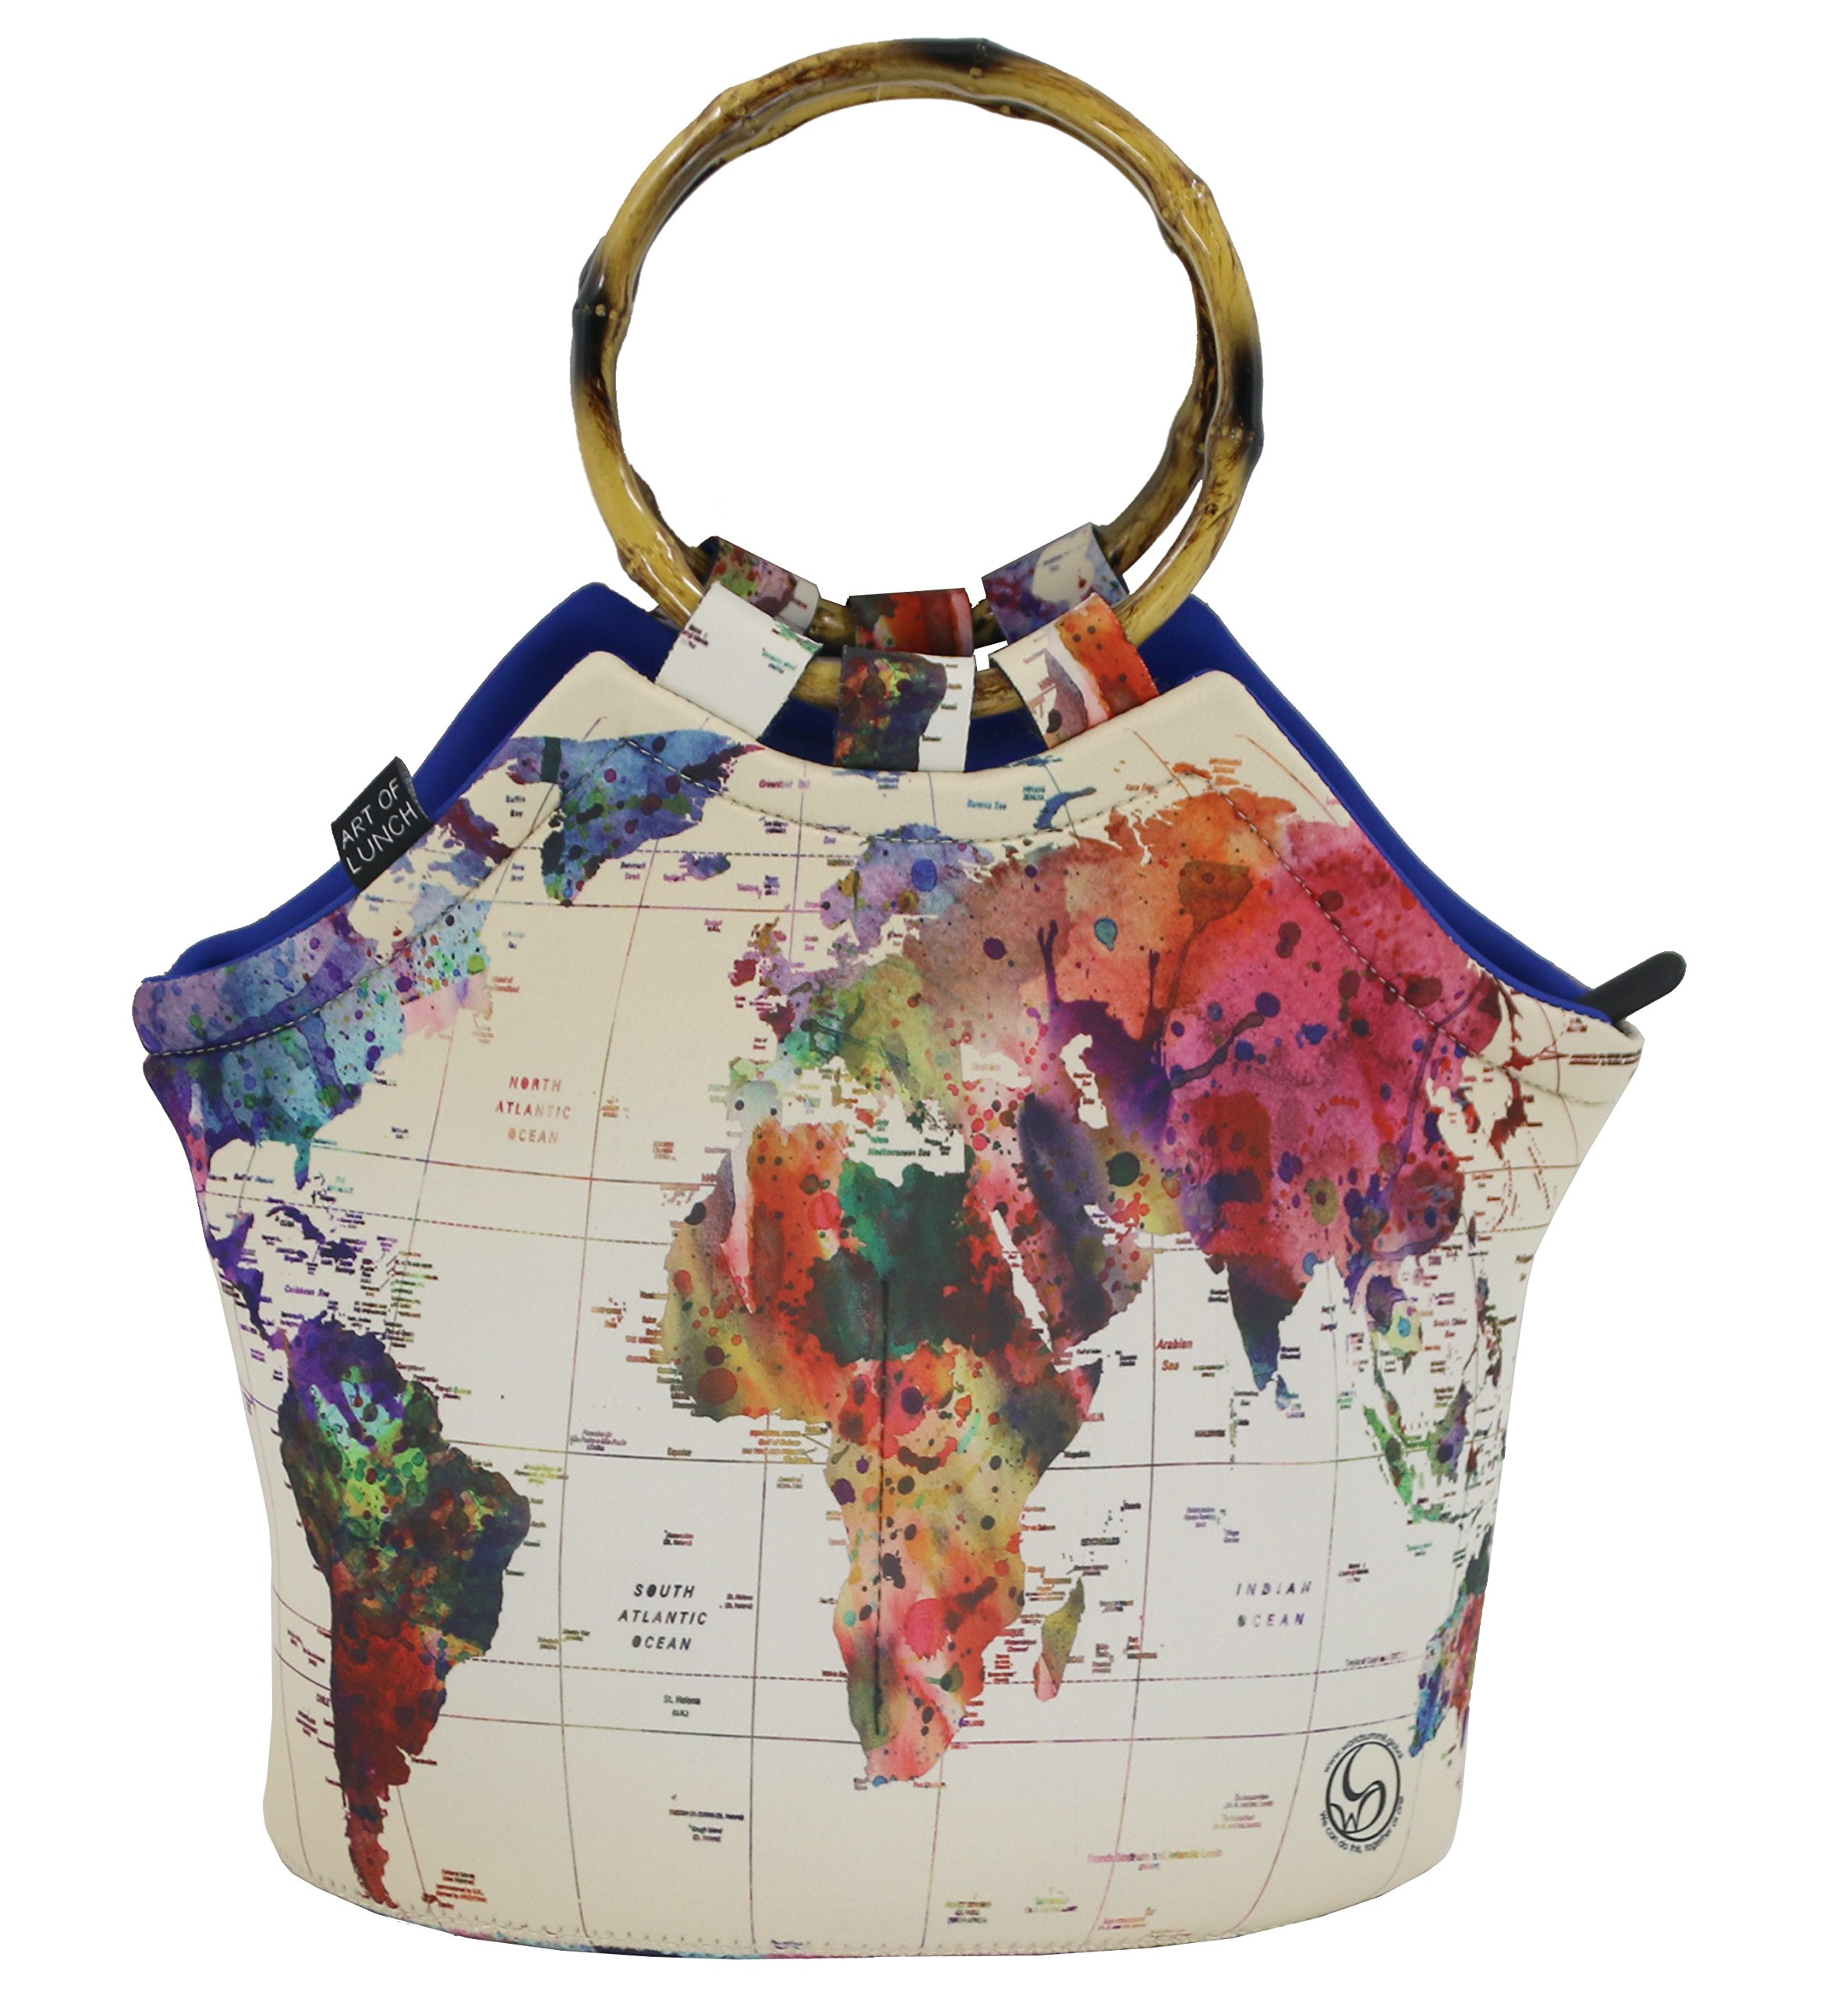 Art of Lunch Large Neoprene Lunch Bag Purse 11'' X 15'' X 6''. All Proceeds Go to Support The World Summit. Design by Mark Ashkenazi (Israel) - World Map